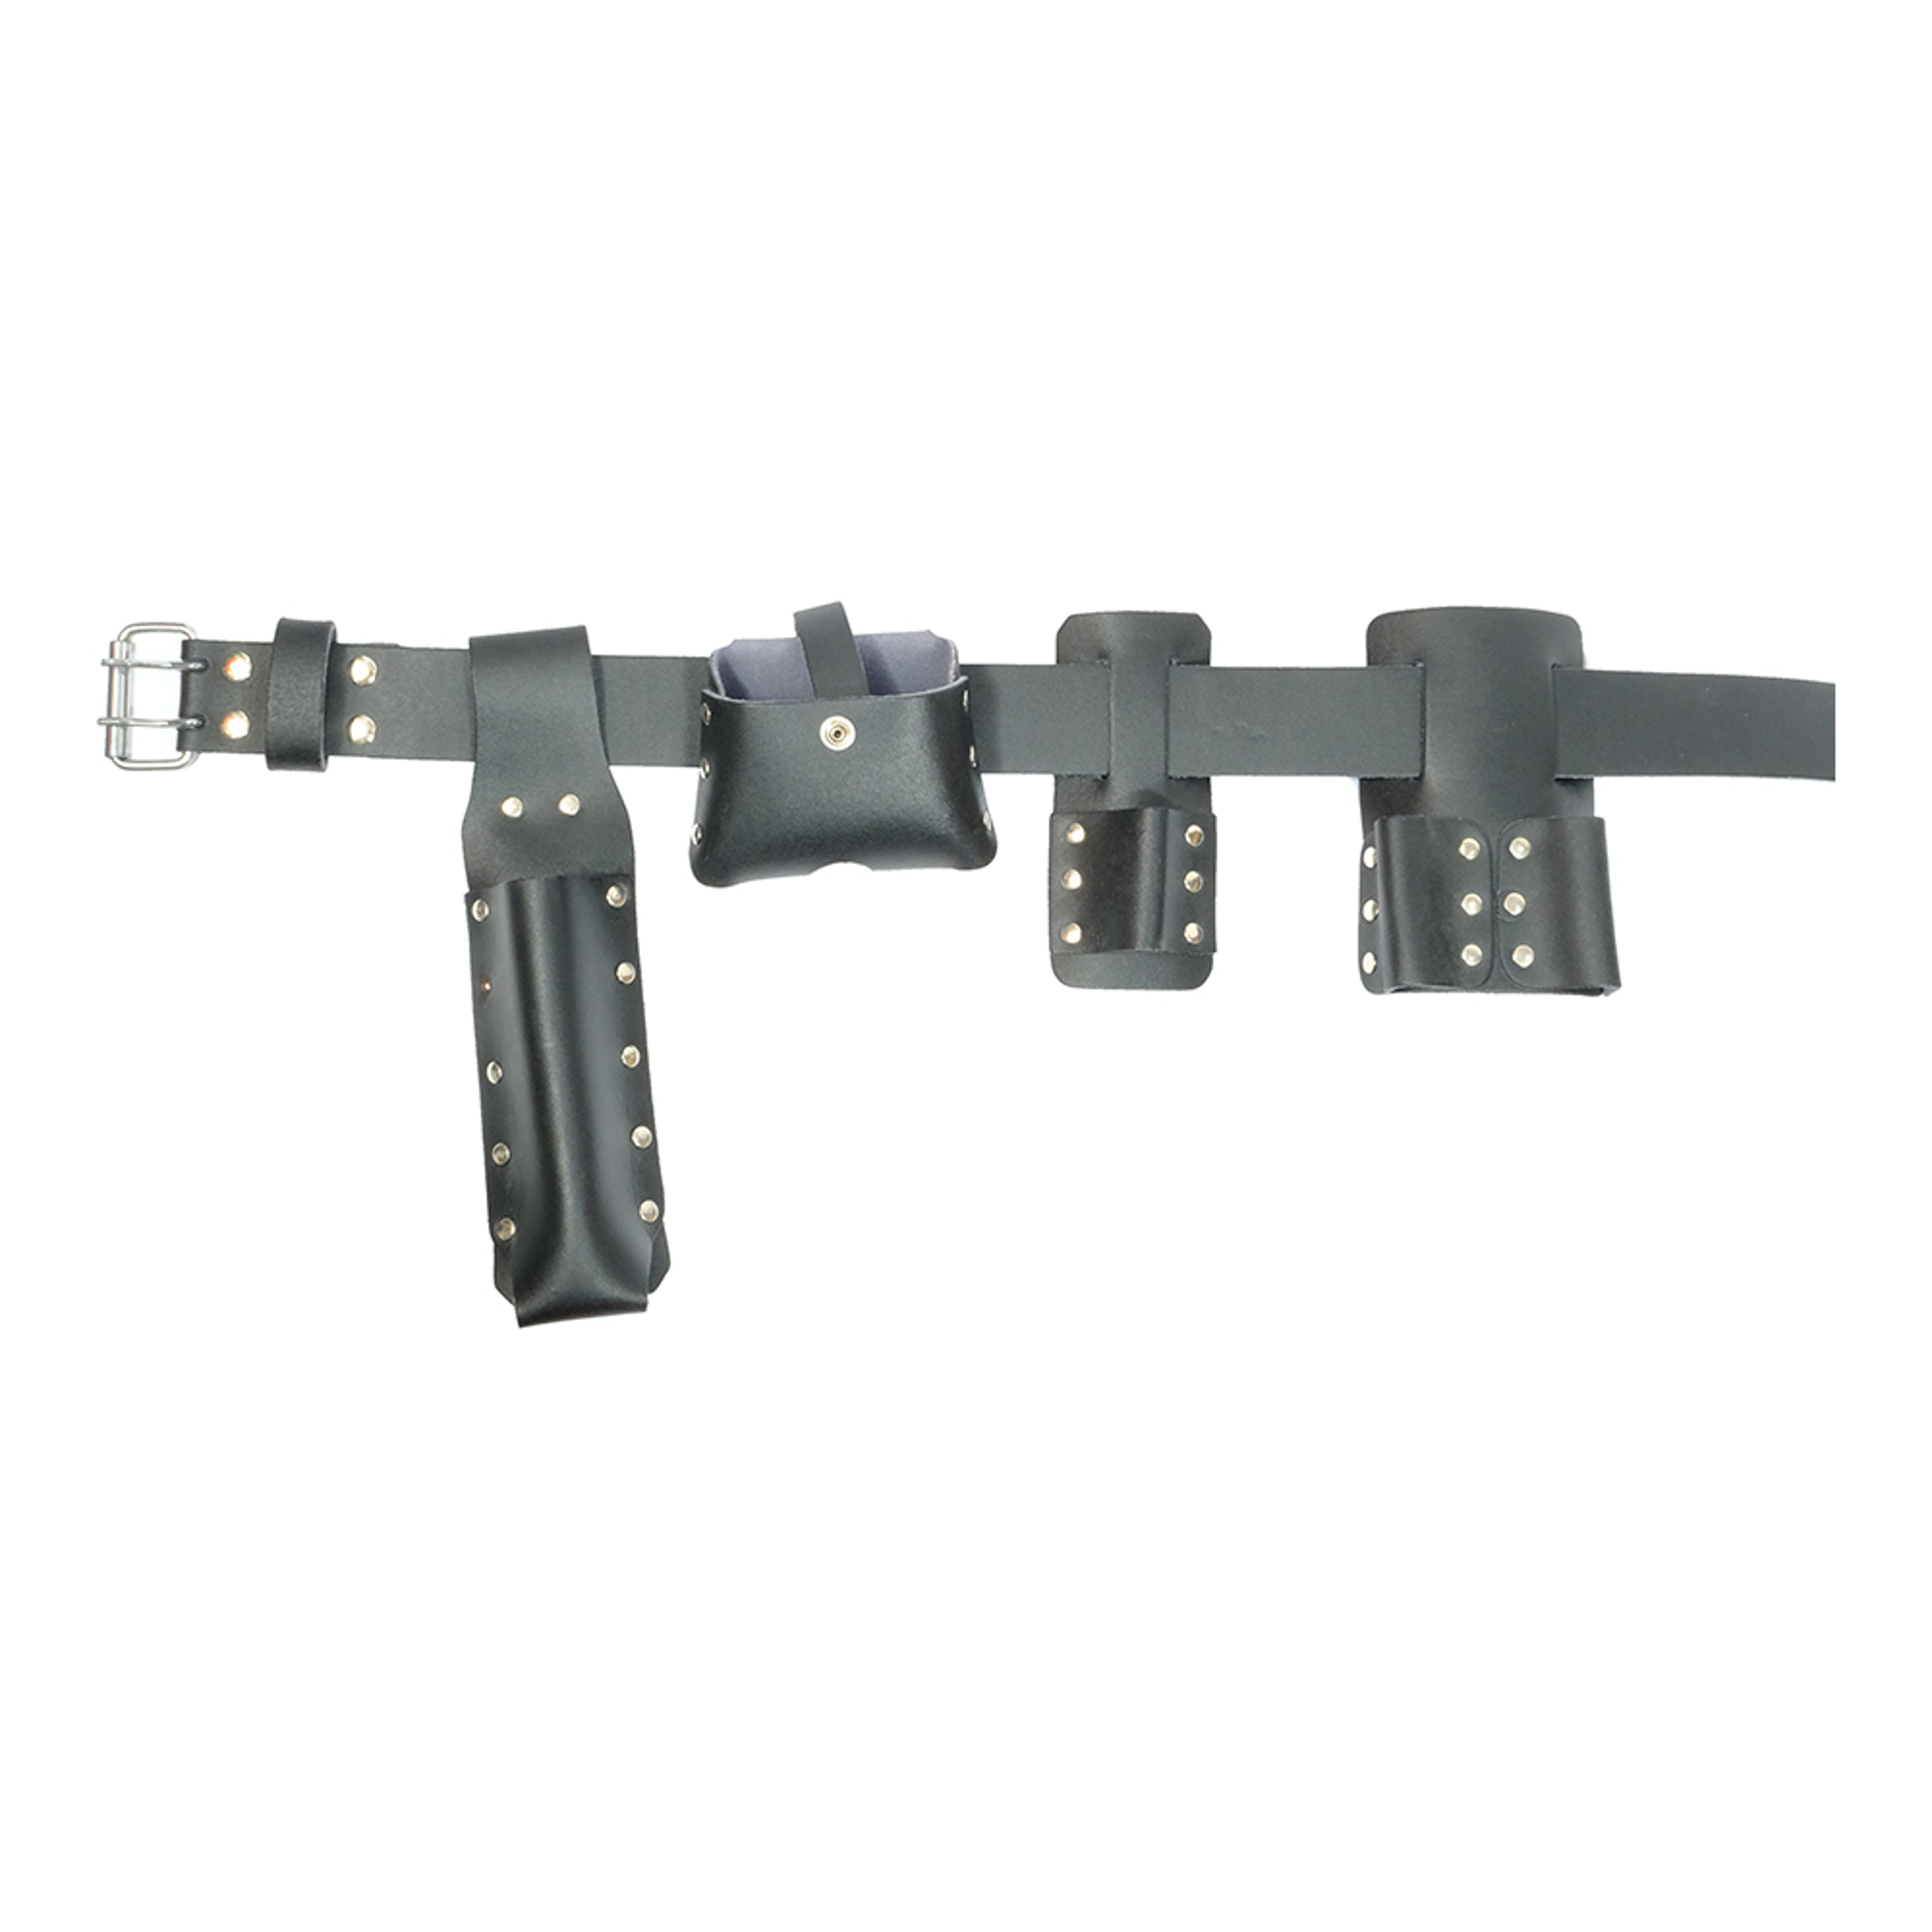 Picture of EYEVEX Scaffolding Safety Accessories ESBB-FS4